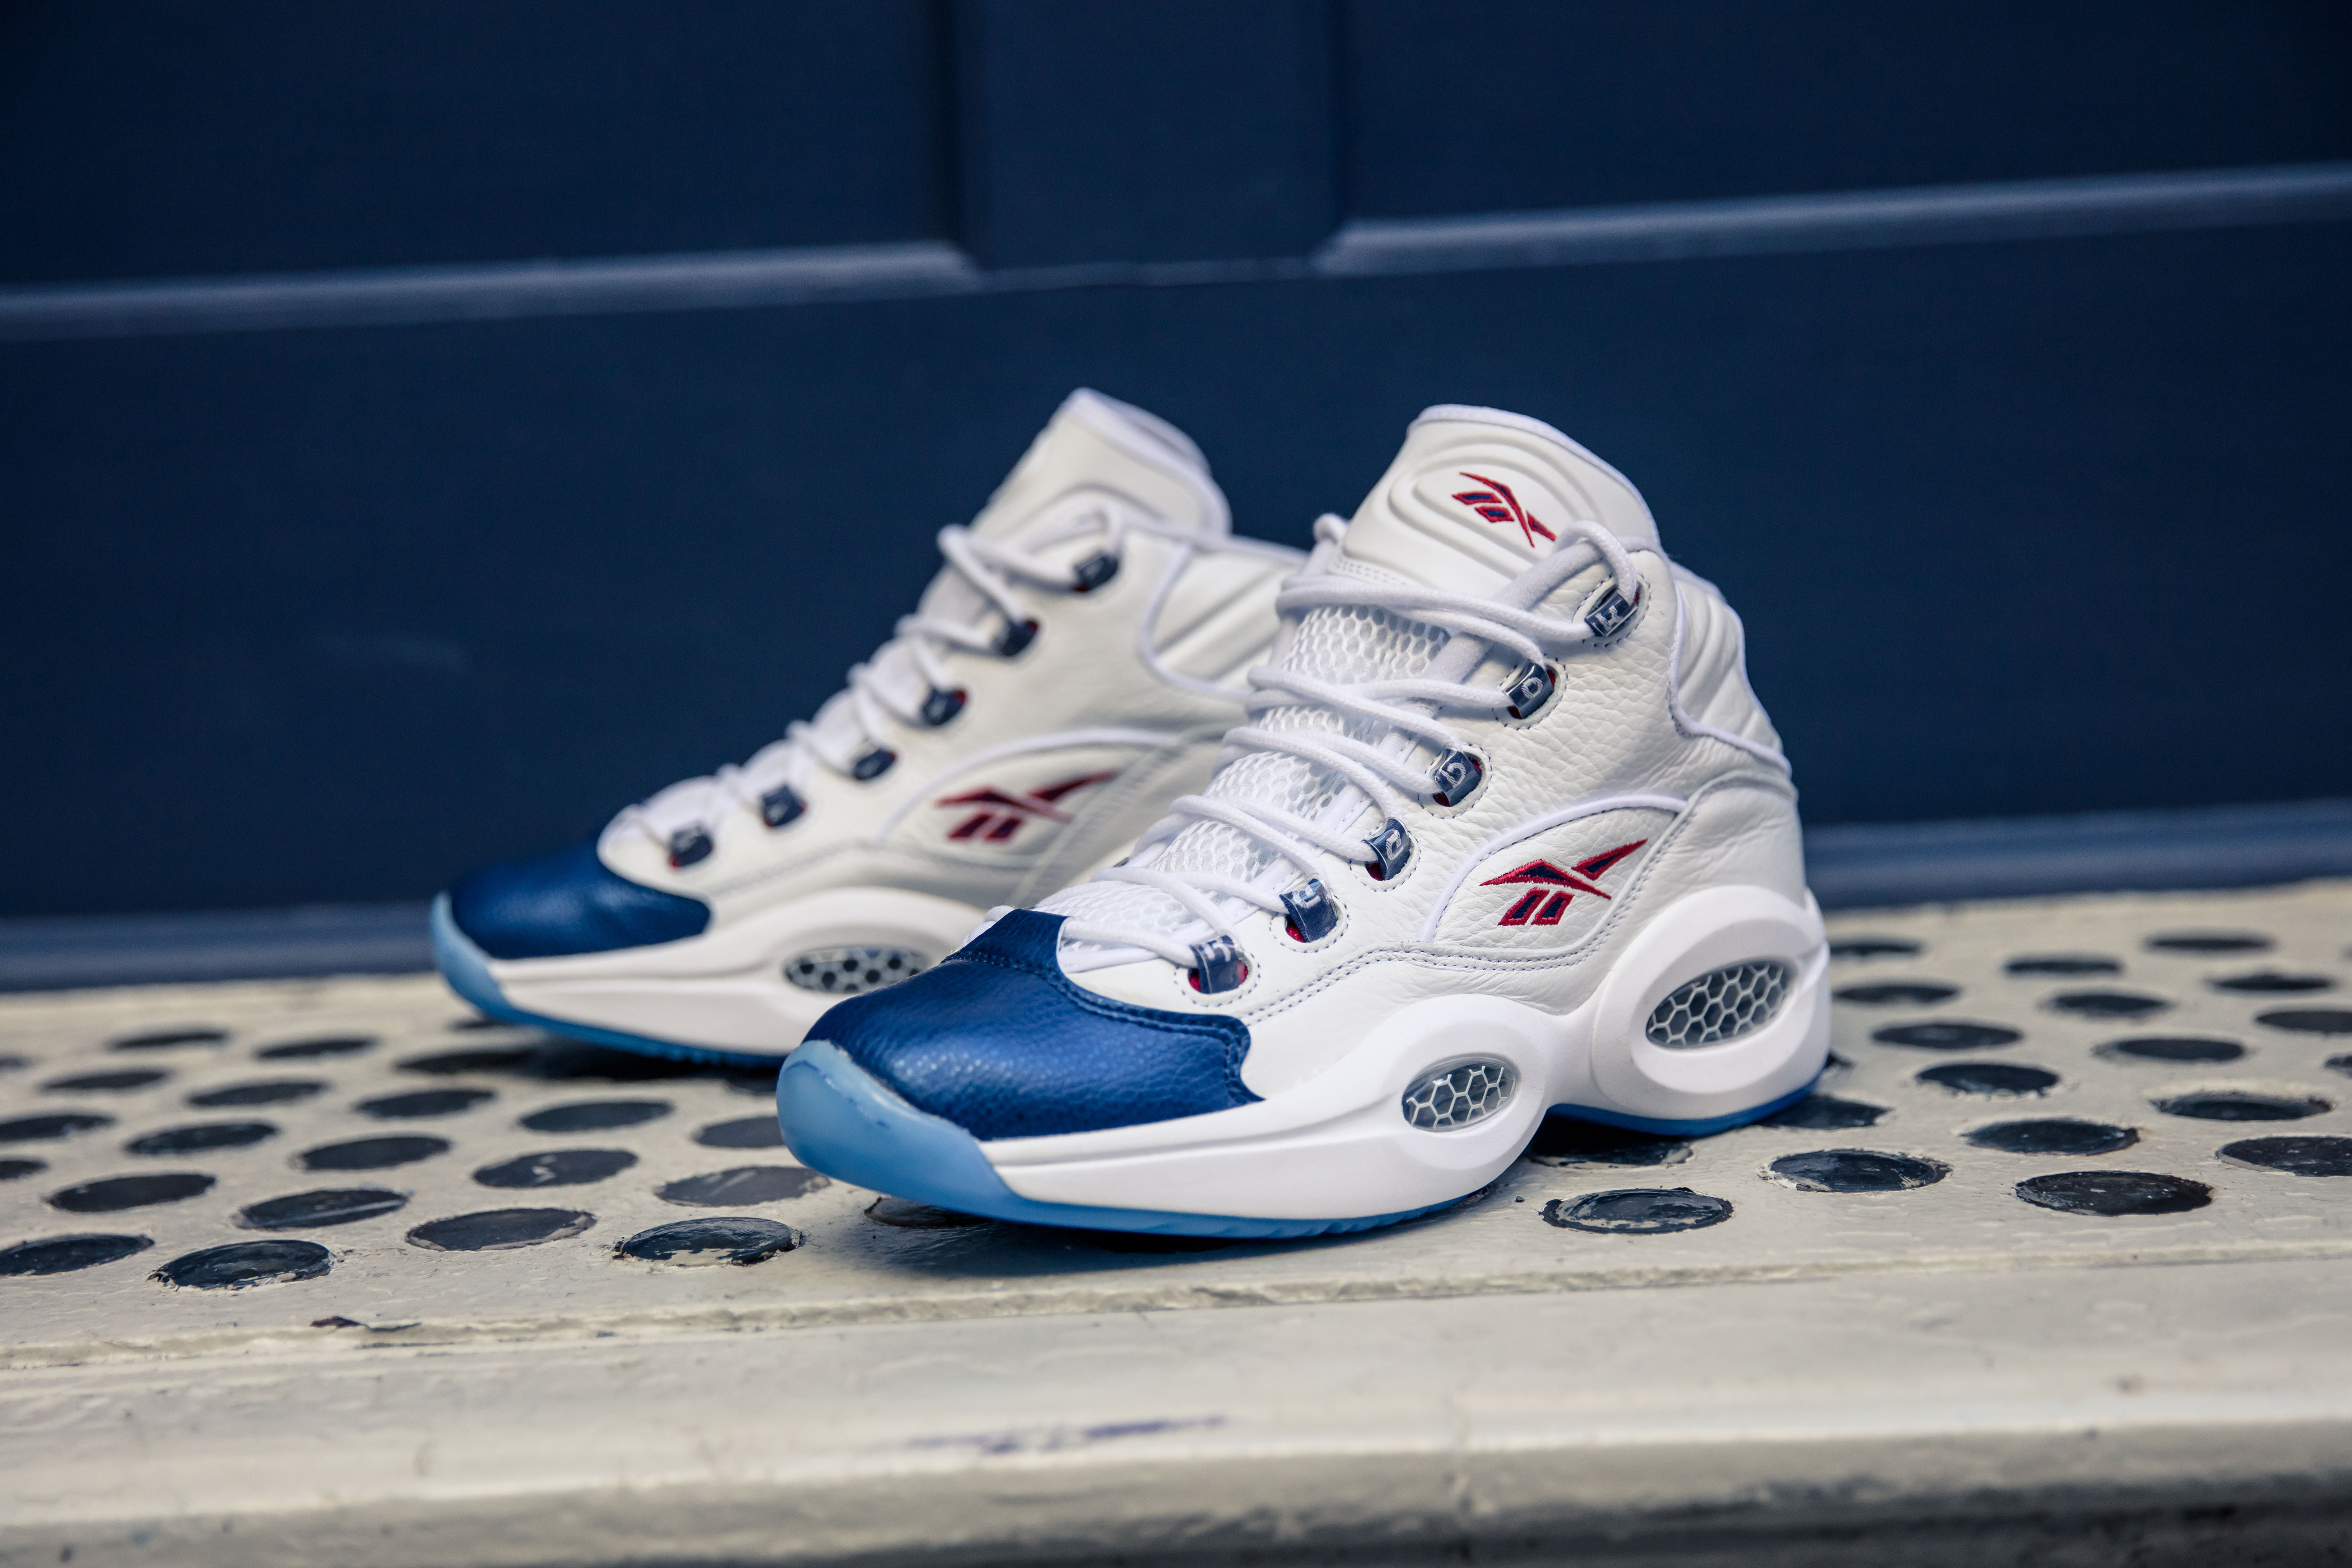 486f7afe97b0 Reebok Re-Releases Iconic Question Mid OG